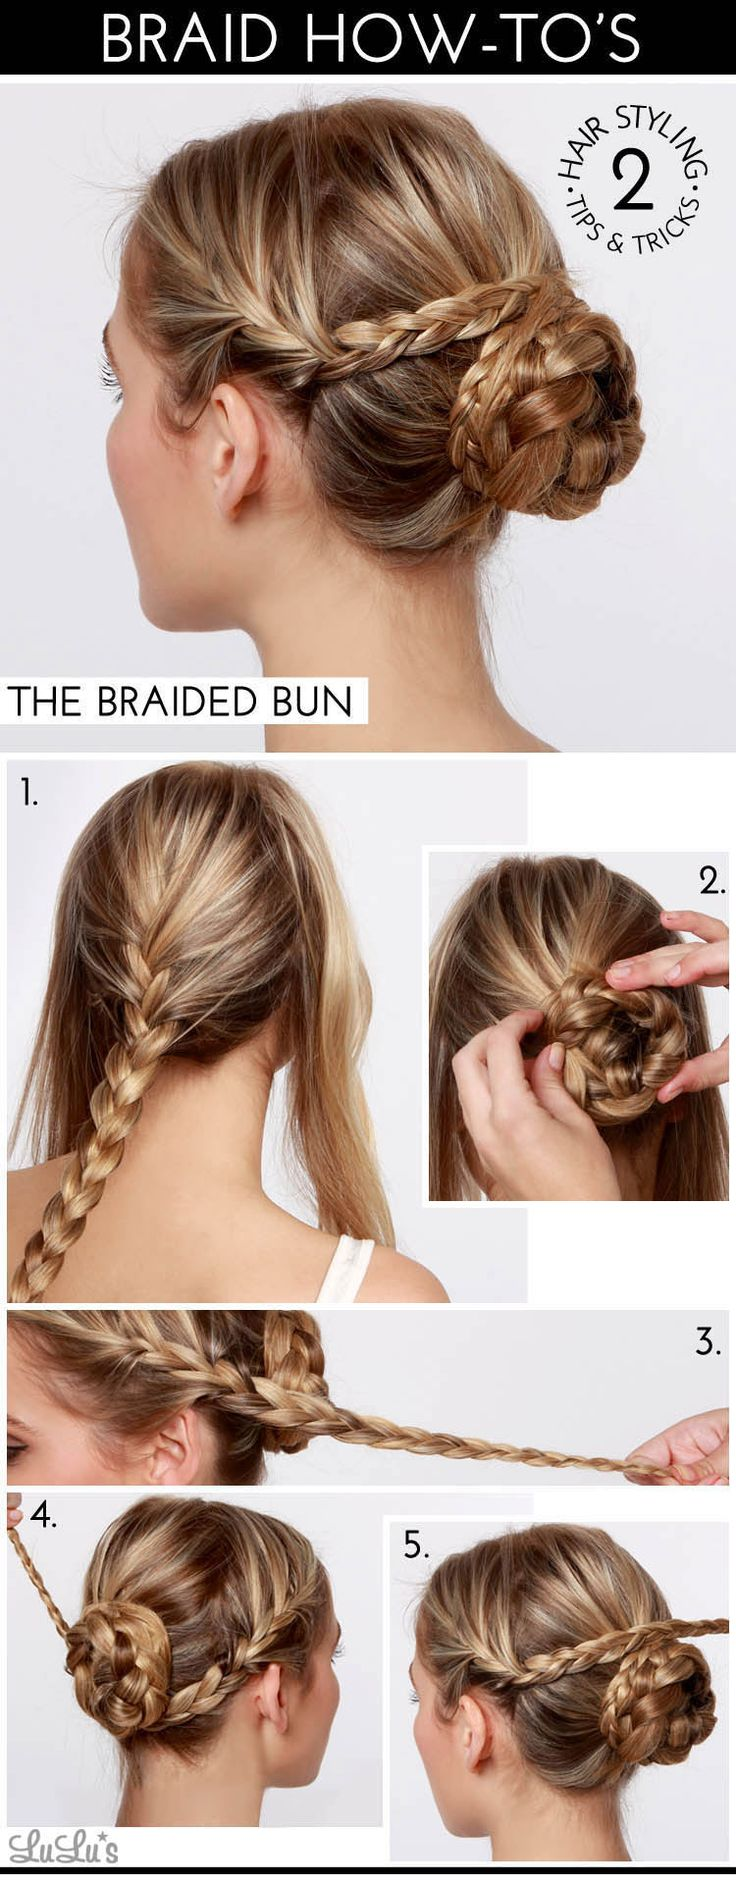 Braided bun #braid #updo #bun #hair #hairdo #hairstyles #hairstylesforlonghair #hairtips #tutorial #DIY #stepbystep #longhair #howto #practical #guide #wedding #bride